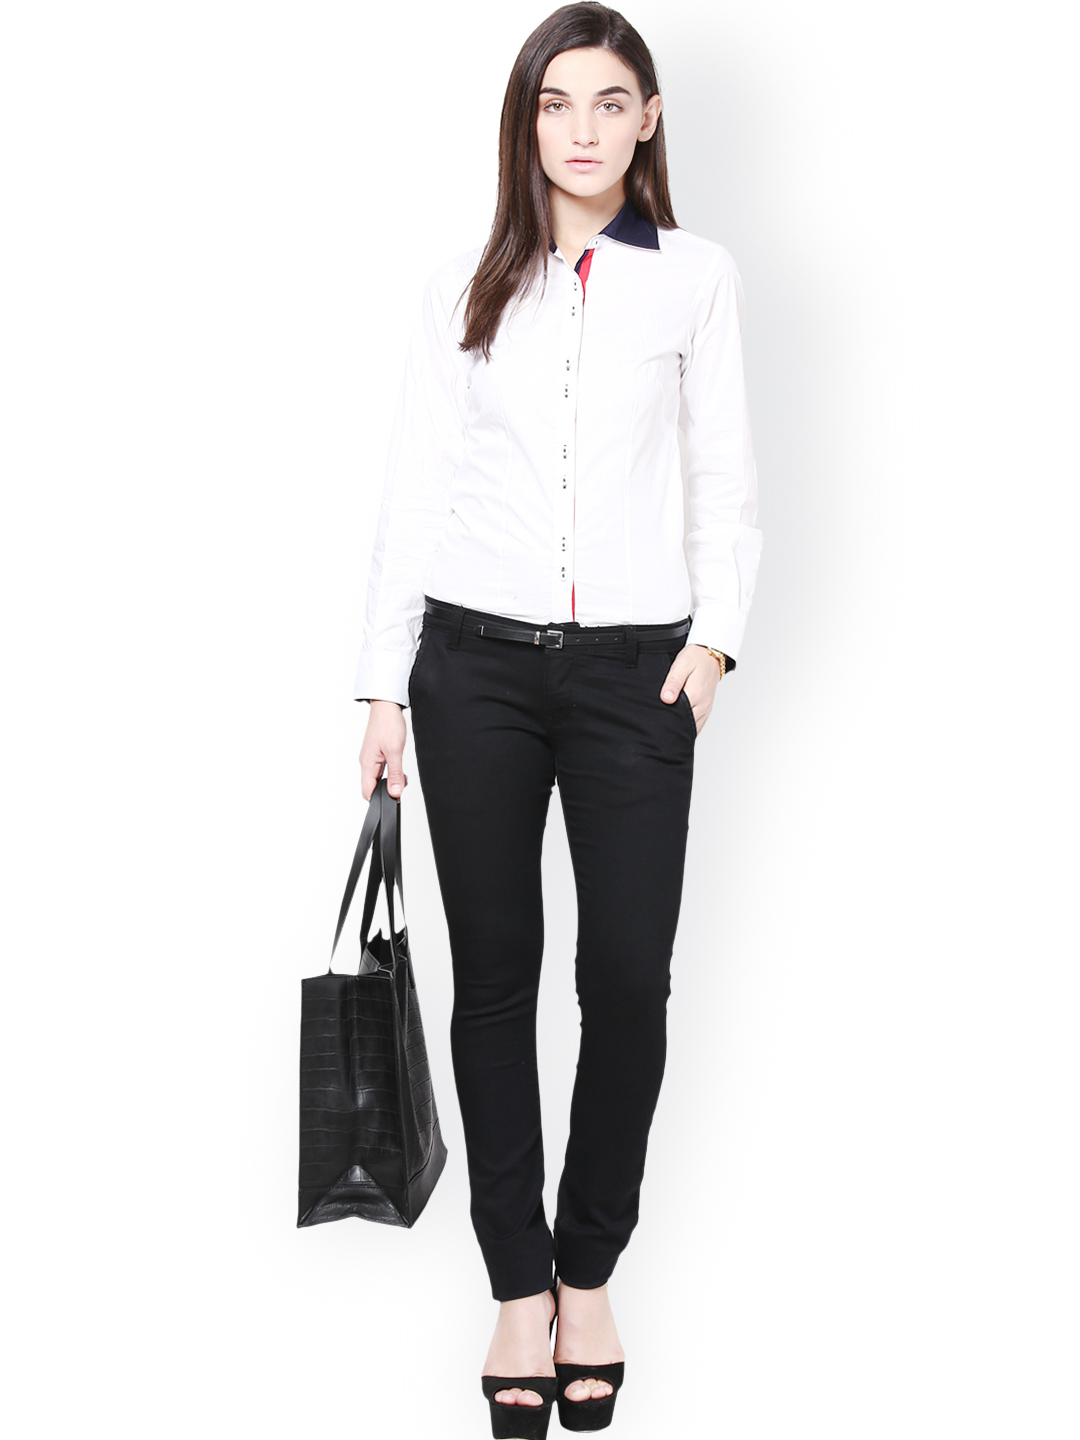 21 Innovative Formal Pants For Women Online Shopping U2013 Playzoa.com